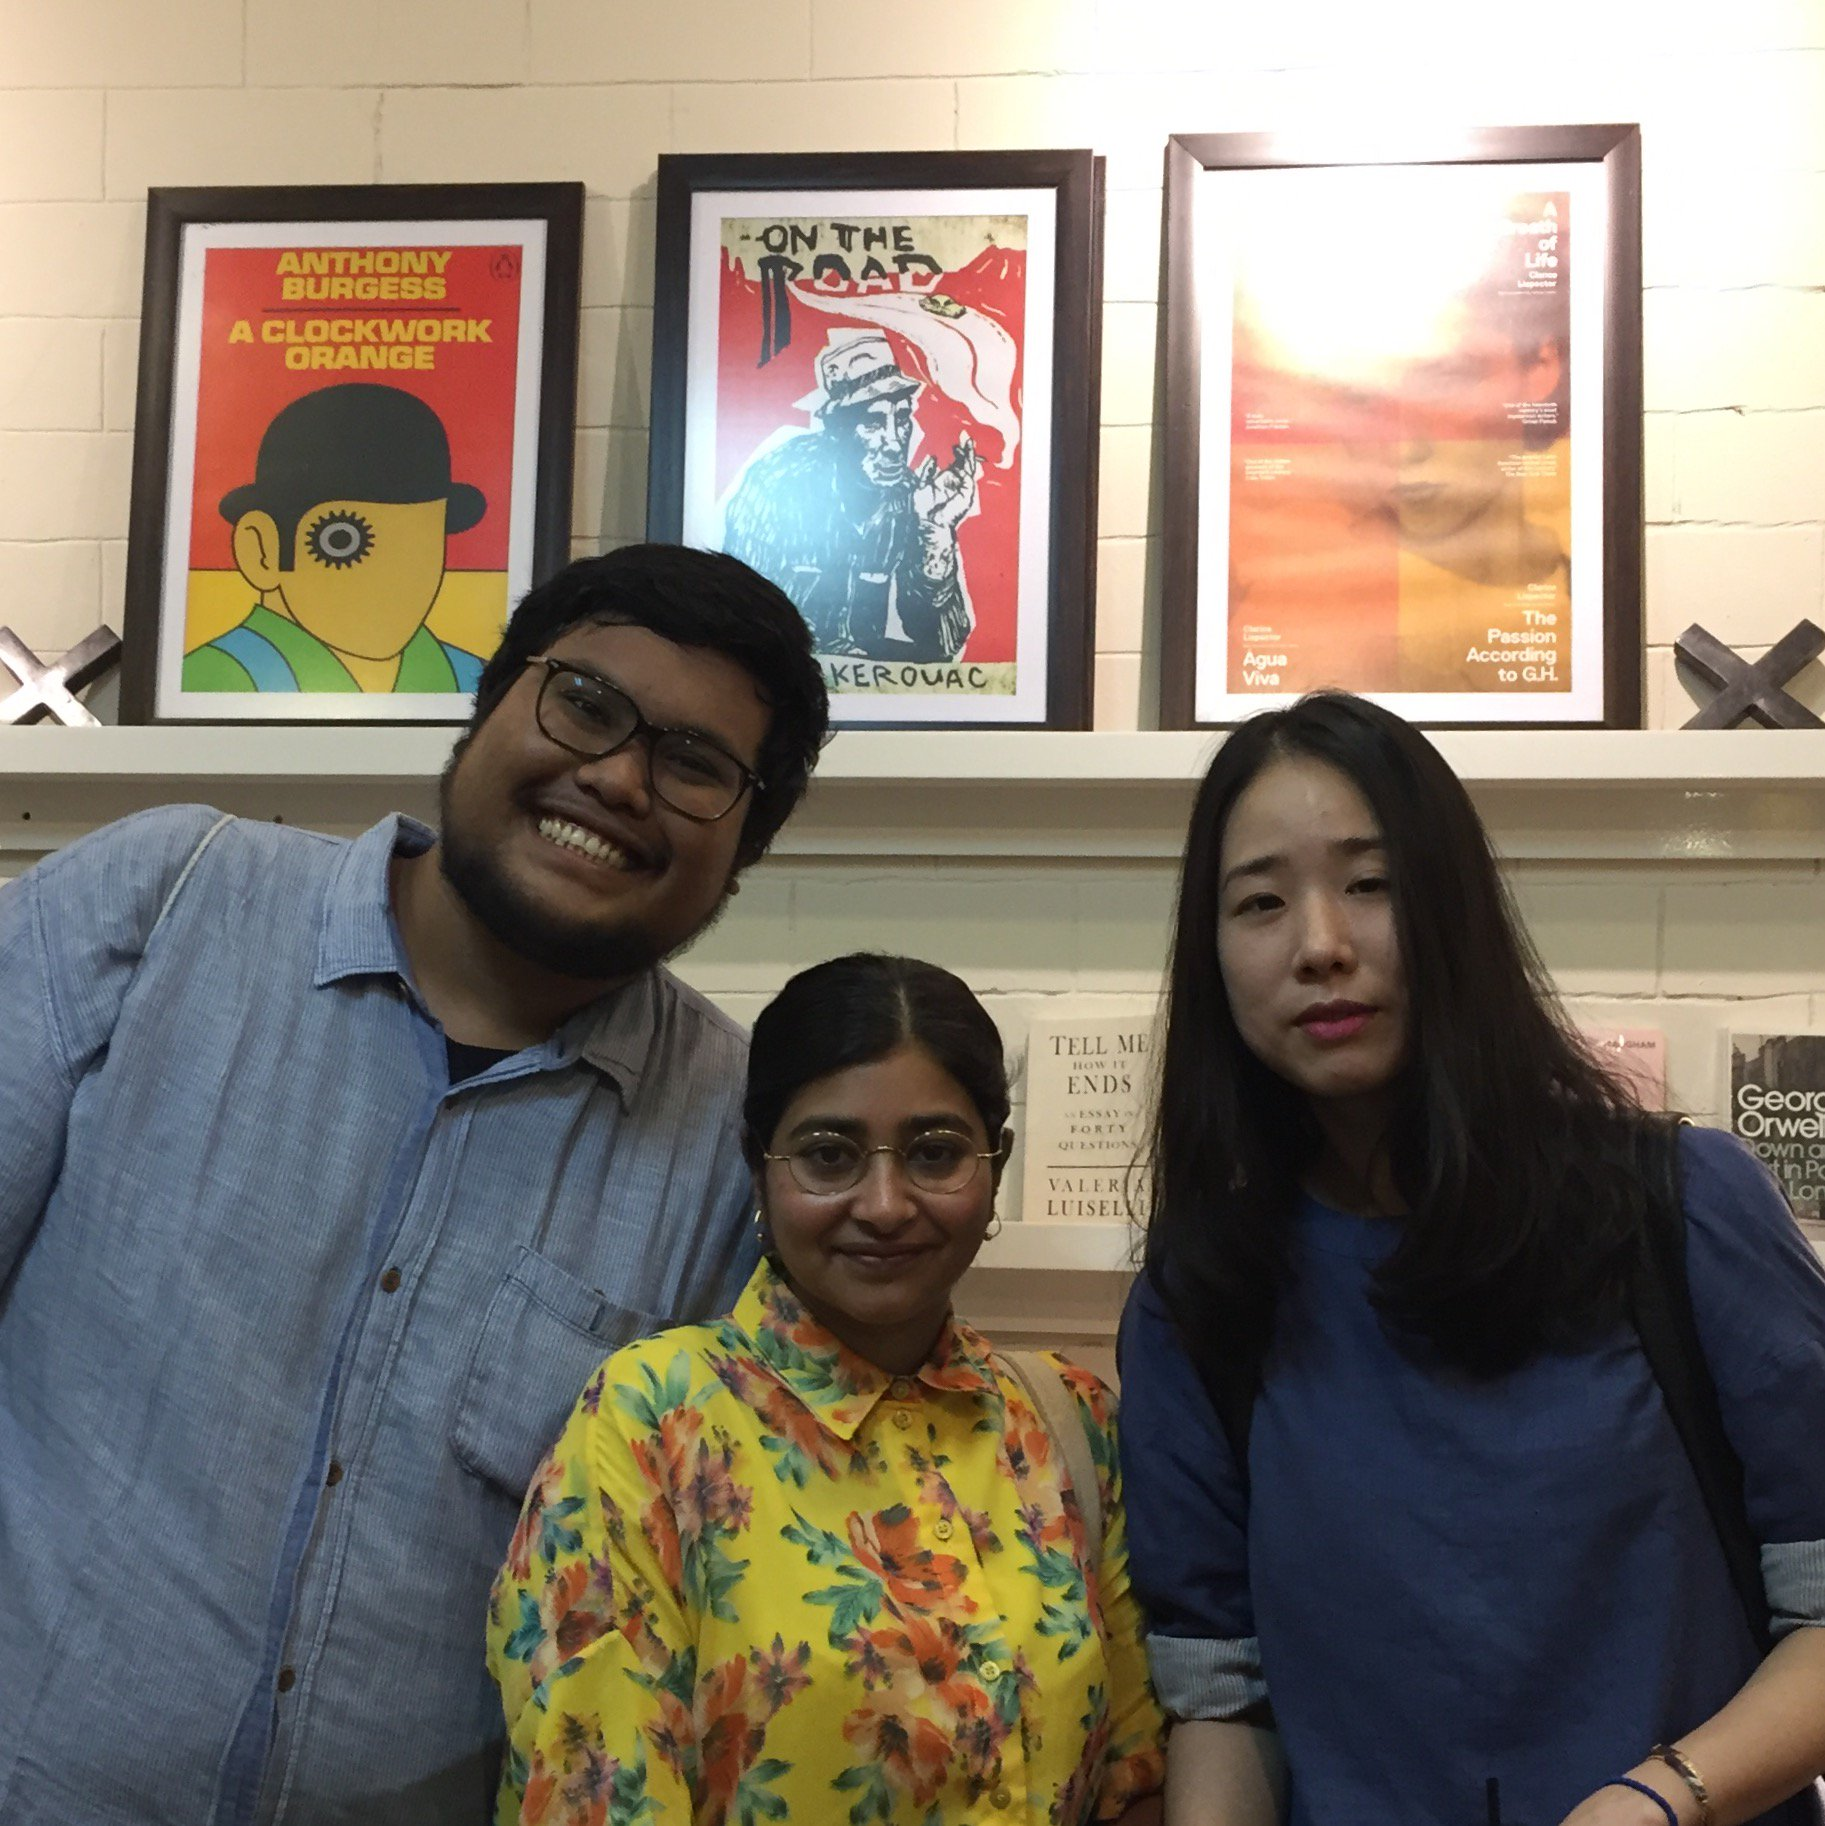 - Day 6: Our last day here (sob!)– we blow the last of our rupiah at POST (a bookshop that doubles as a micro-press) at Pasar Santa, publisher of Mikael Johani's poetry collection We Are Nowhere And It's Wow. Time for one last bear hug with heart-breaking poet Norman Erikson Pasaribu whose verses will break you into pieces, then gently re-assemble you. And a chance to meet our own Han Yujoo, queen of cool and experimental dream-like prose, who is visiting Jakarta as part of the WrICE programme.